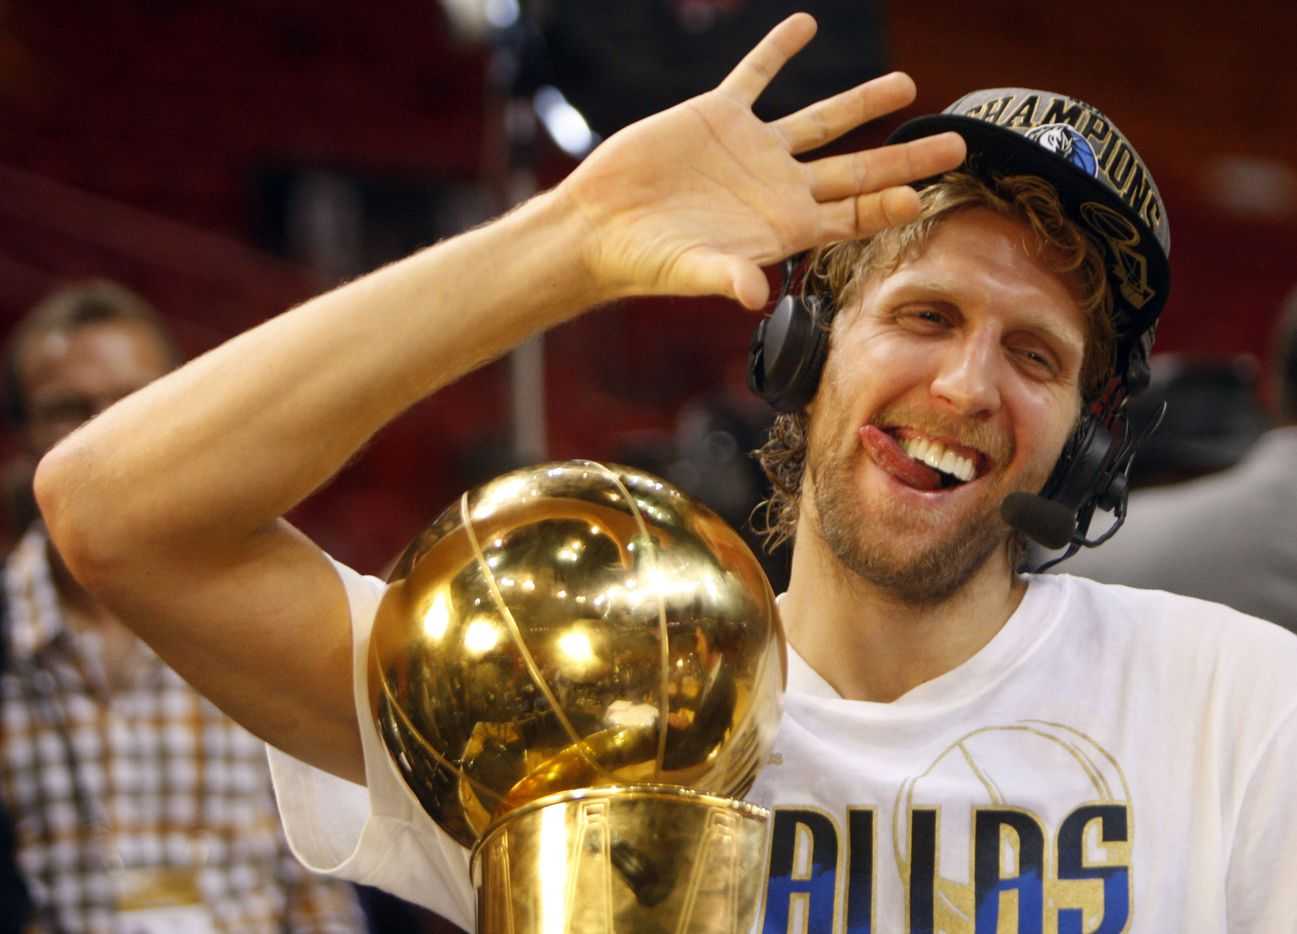 Dallas Mavericks power forward Dirk Nowitzki (41) shows how he drinks his champagne with his right hand after he was asked if he had any problems holding the bottle in celebration after winning in game six of the NBA Finals between the Miami Heat and the Dallas Mavericks at the American Airlines Arena in Miami, Florida, June 12, 2011. The Mavericks won 105-95 to take the title. (Vernon Bryant/The Dallas Morning News) Nowitzki is holding the Larry O'Brien NBA Championship trophy. 06142011xMAVSspecial